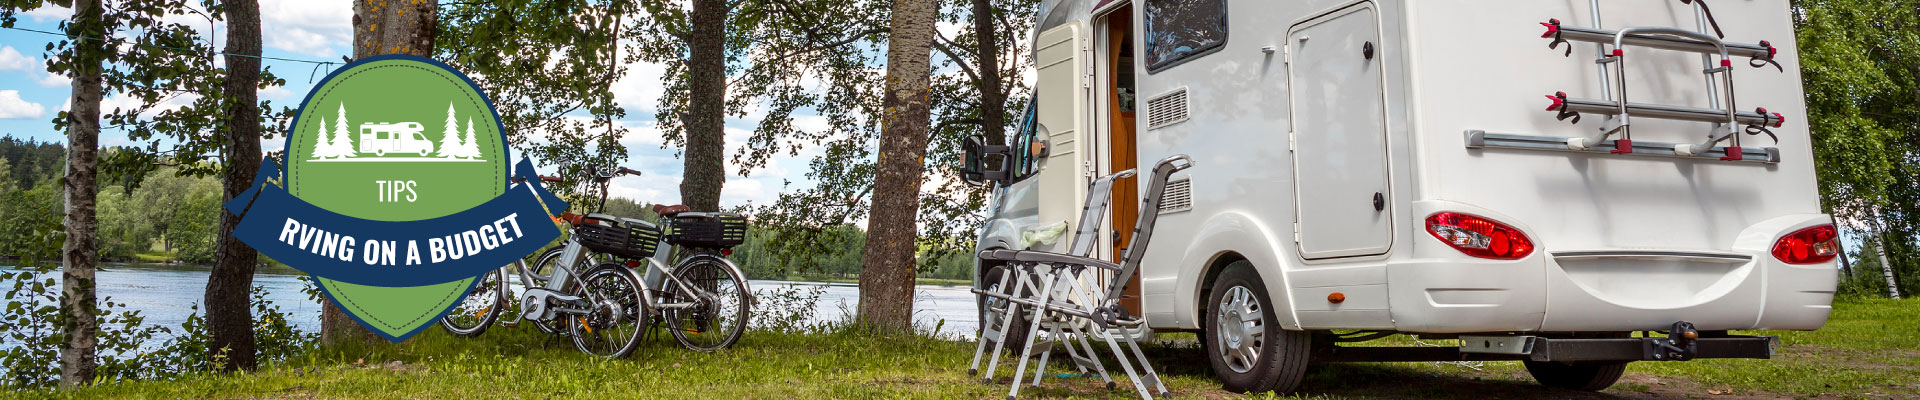 Rving-on-a-budget